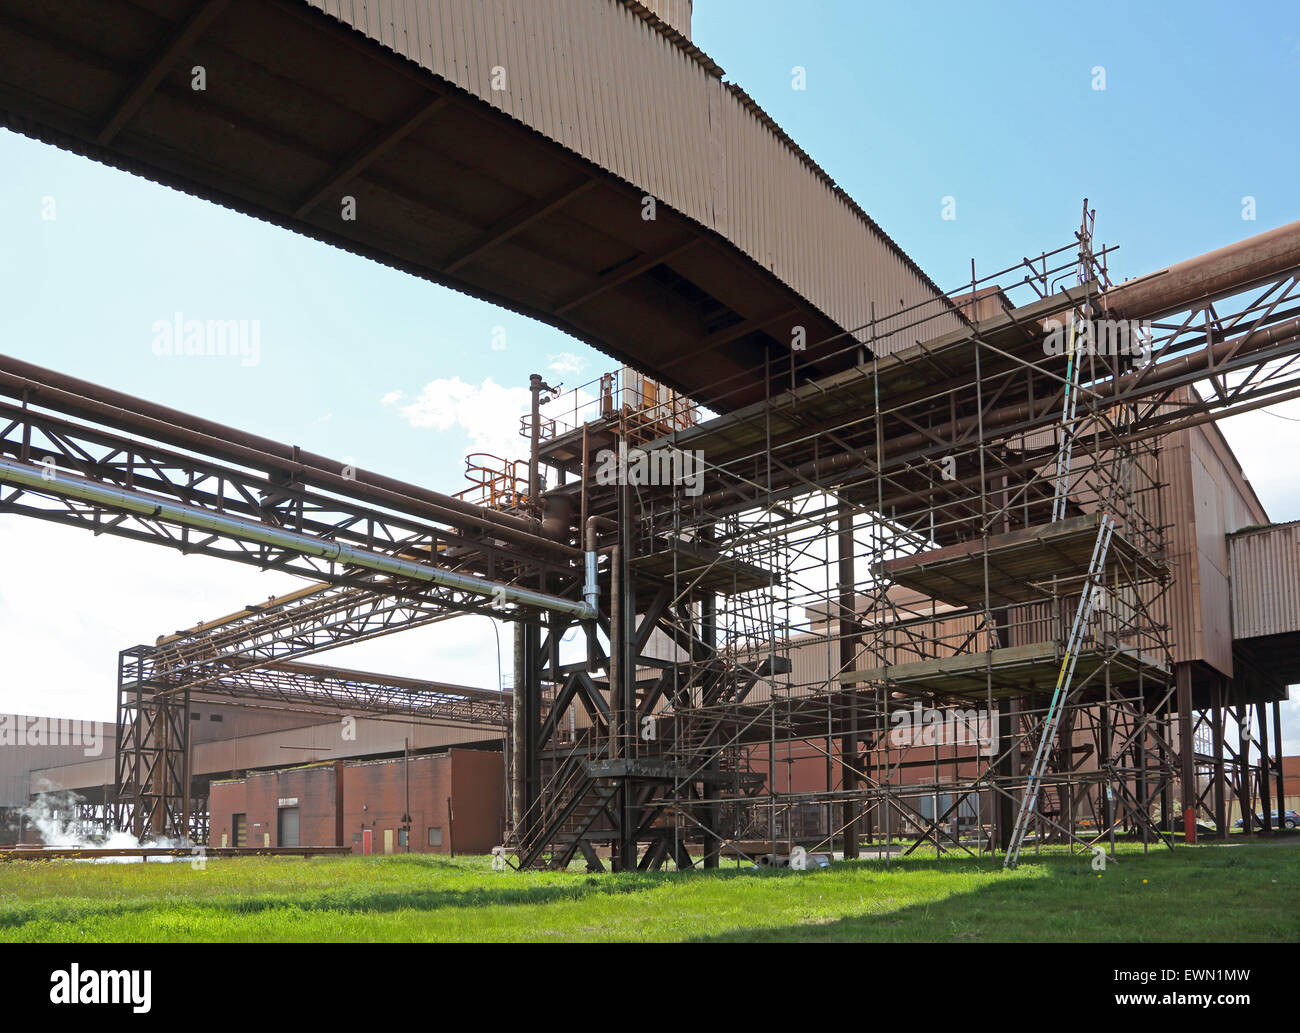 Scaffolding surrounds pipe gantries and conveyor belt housings at the re-opened Redcar Steelworks, Cleveland, UK - Stock Image